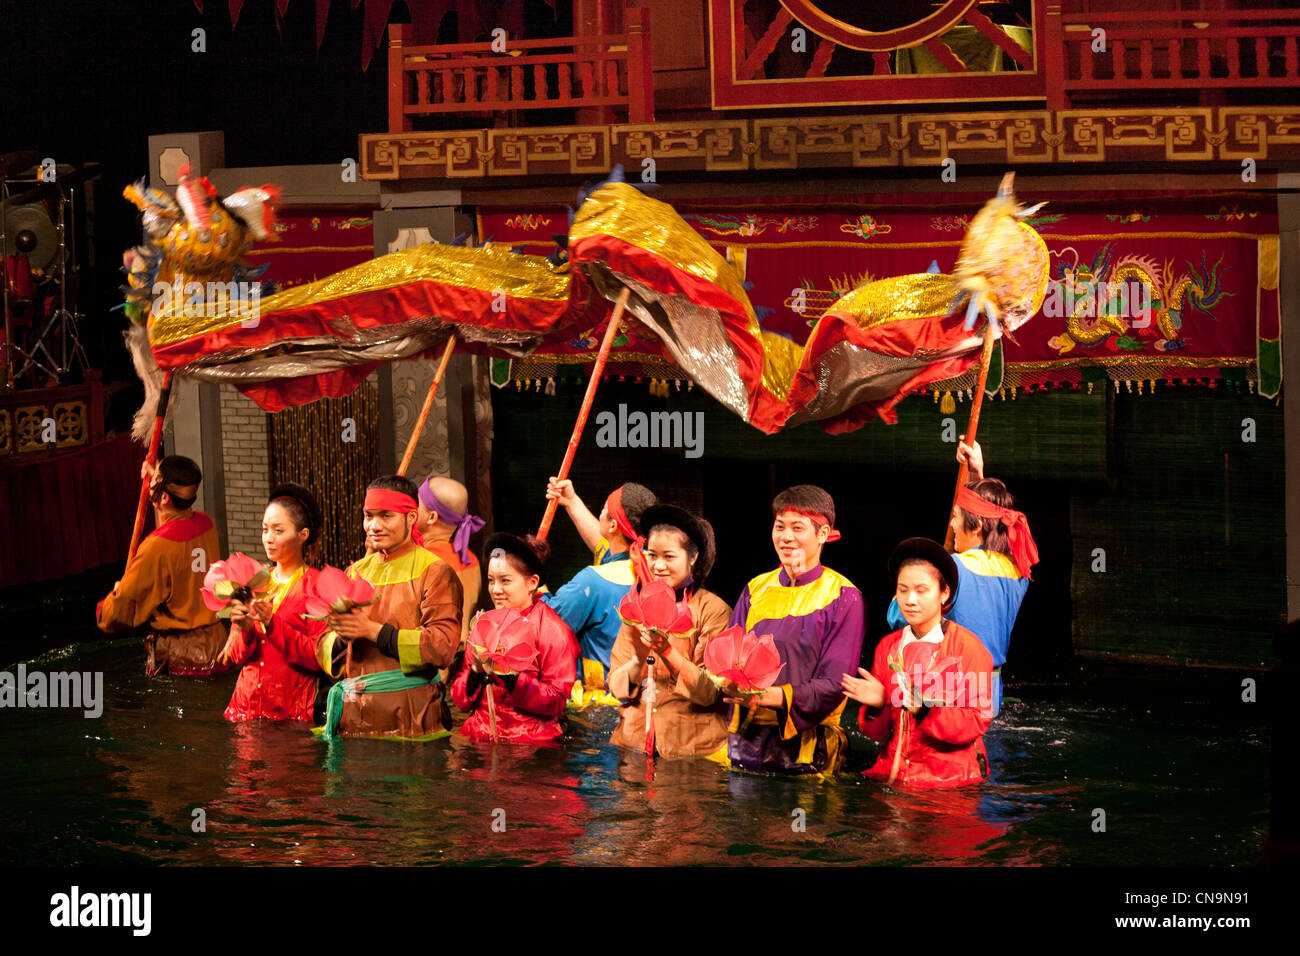 Puppeteers during the curtain call after the performance, Thang Long Water Puppet Theatre, Hanoi, Vietnam - Stock Image